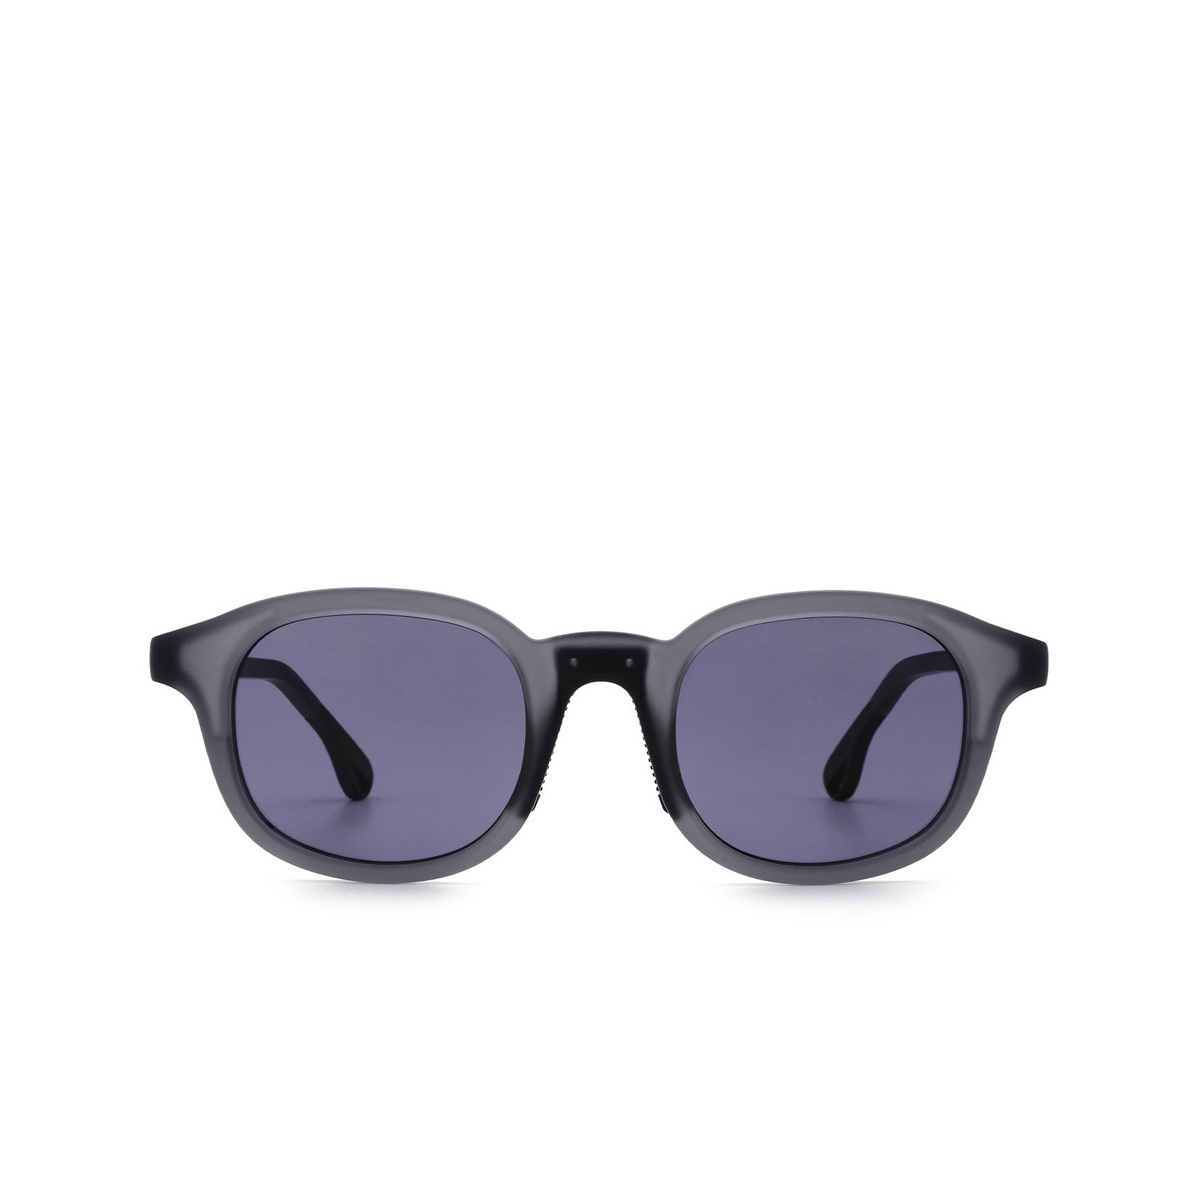 Chimi® Square Sunglasses: 01 ACTIVE color Grey - front view.